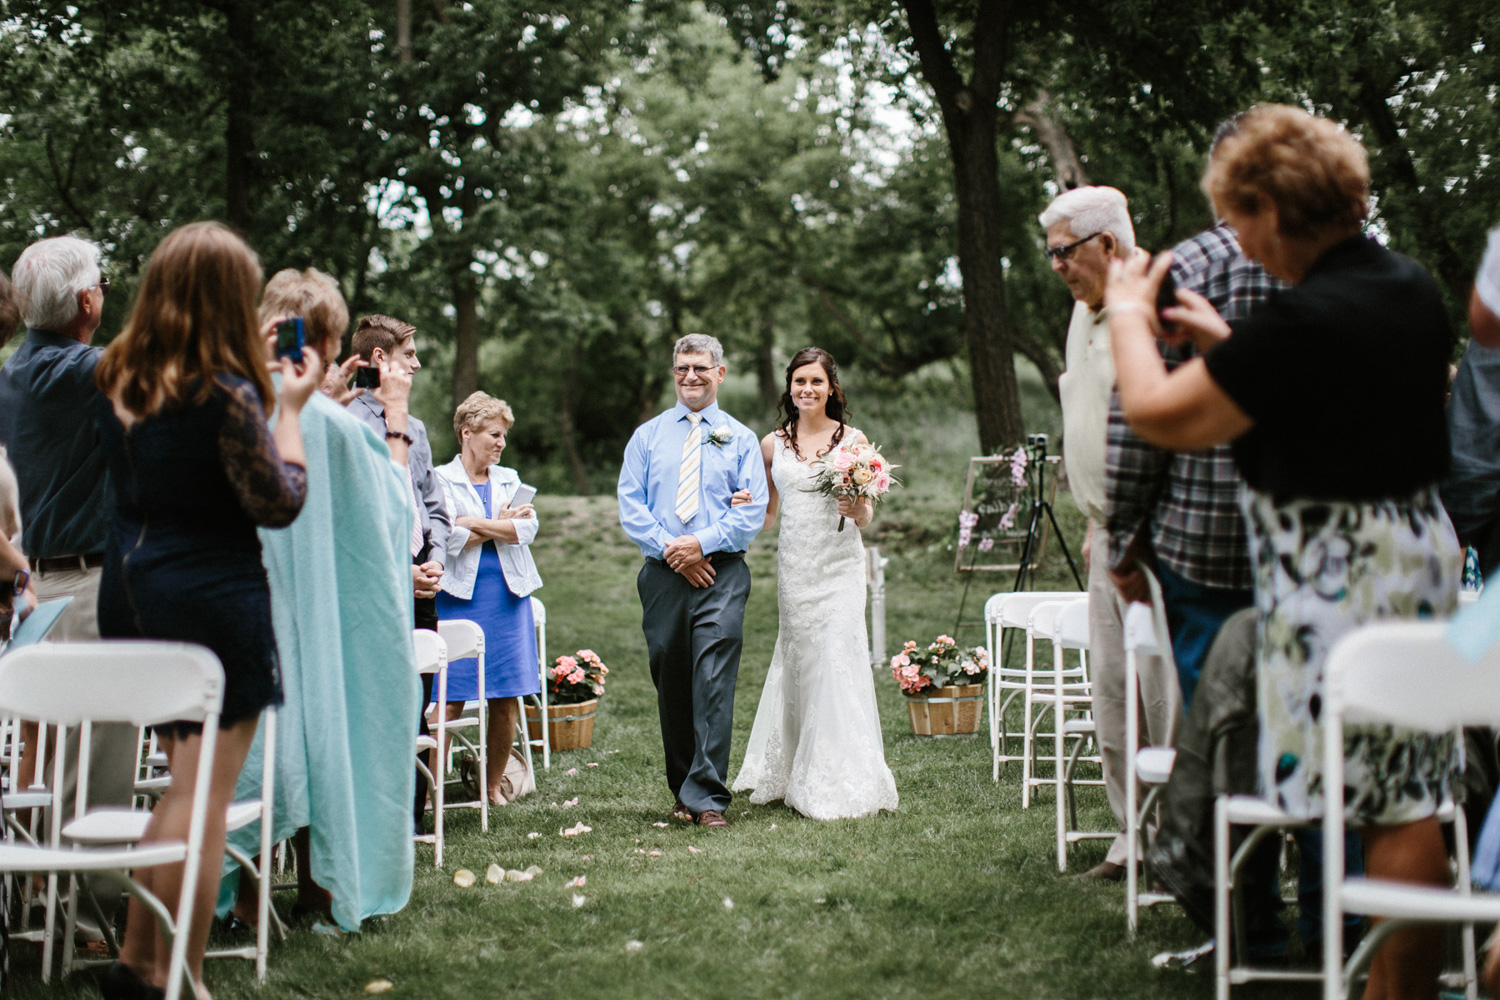 Outdoor_Wedding_SiouxFalls_MaryJoWegnerArboretum_Photographer_Calli&Jon_077.jpg